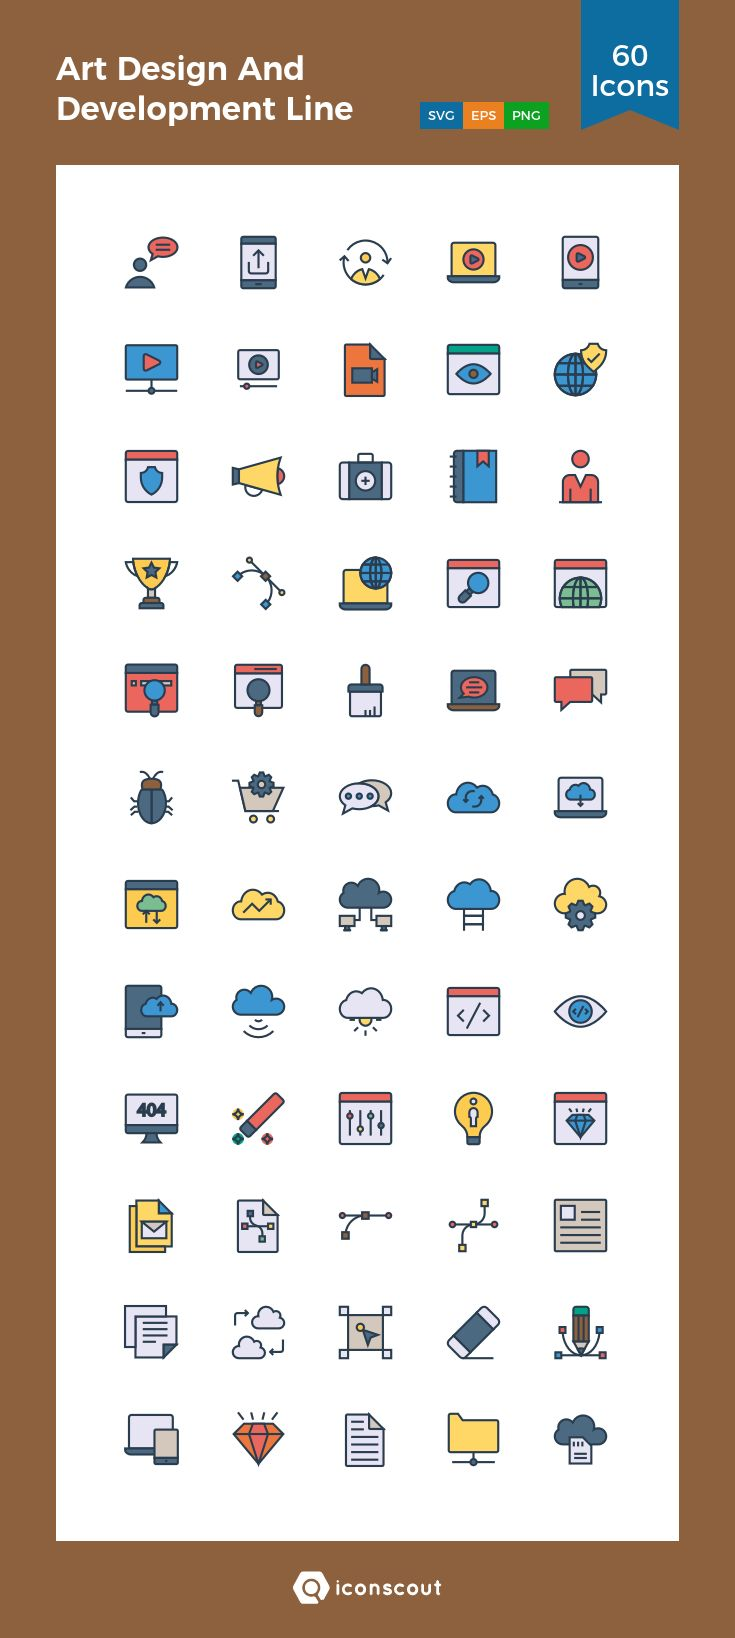 Art Design And Development Line Icons  Icon Pack - 60 Filled Outline Icons